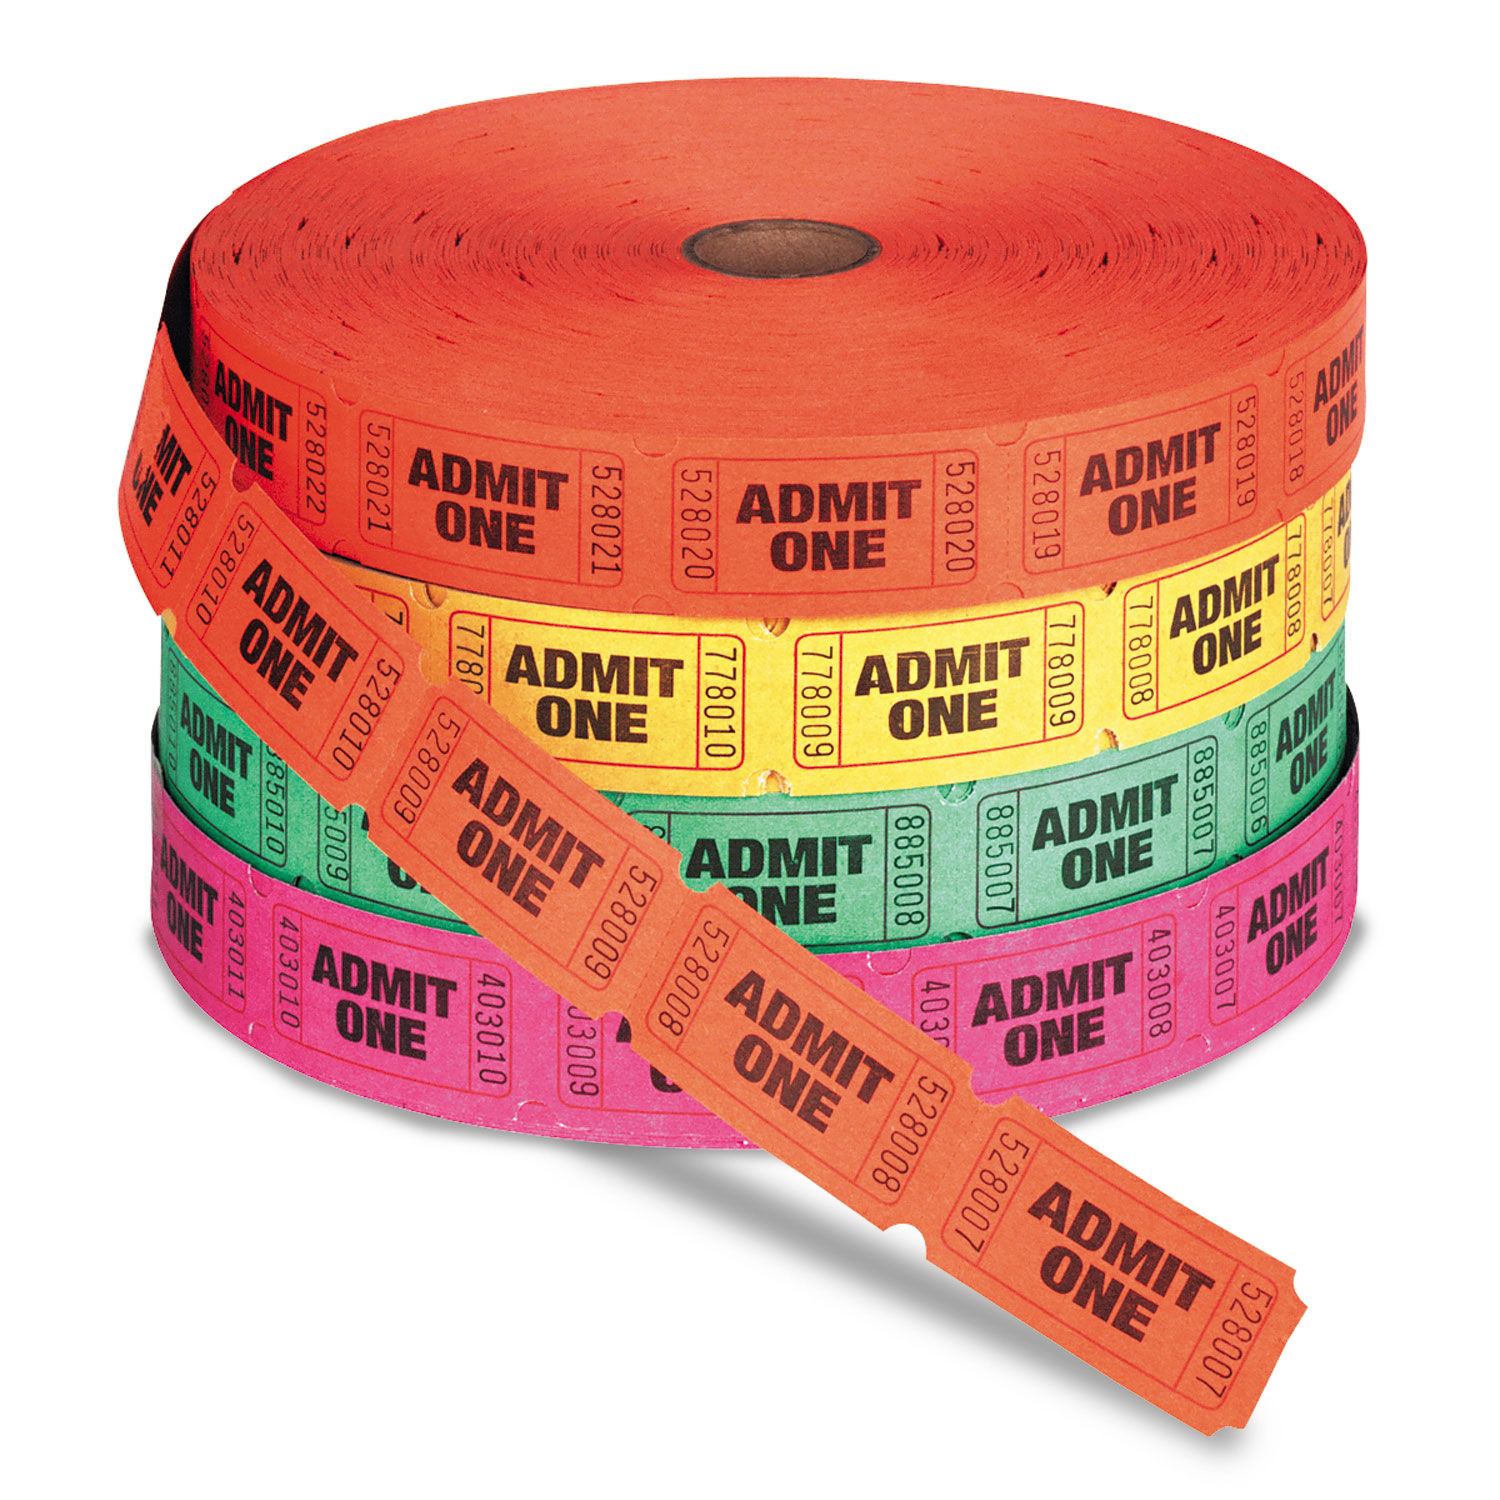 PM COMPANY Admit One Single Ticket Roll, Numbered, Assorted.